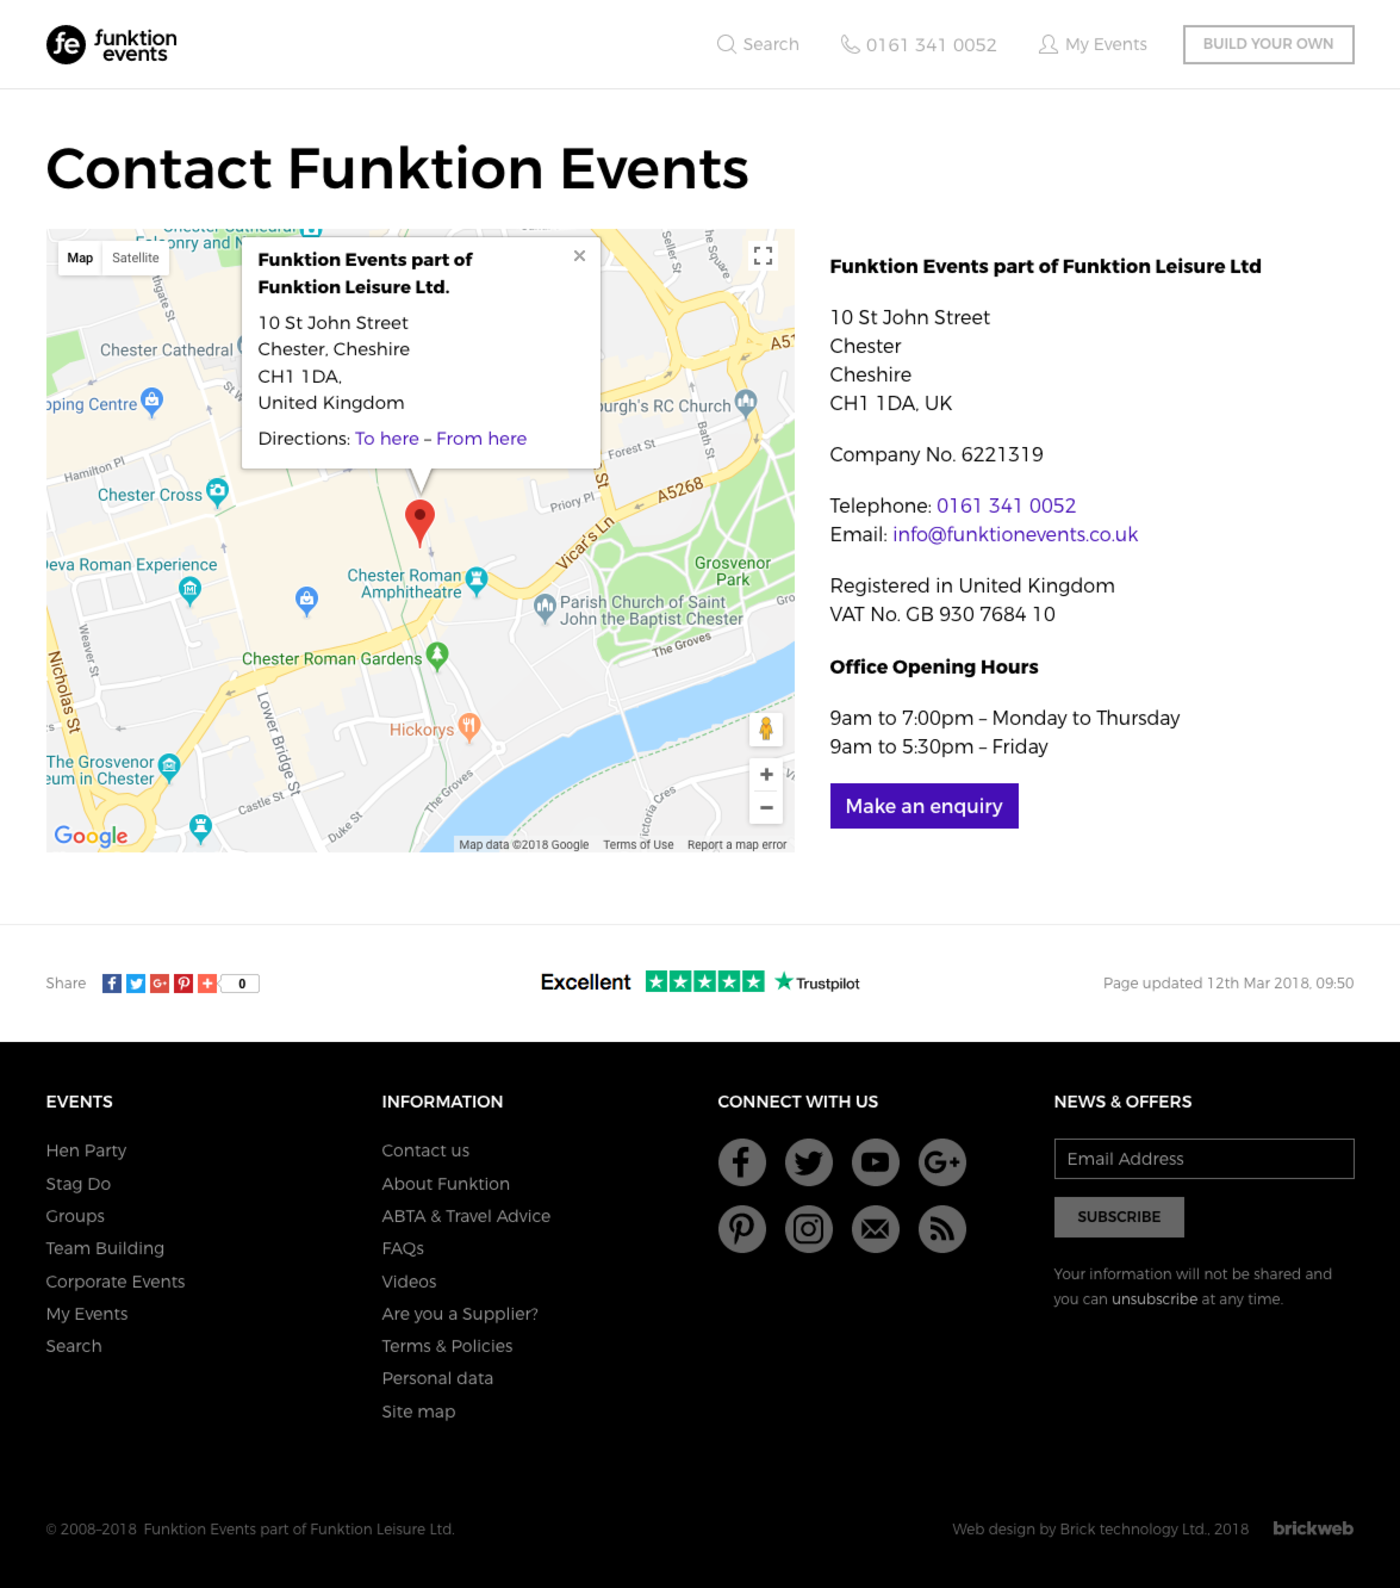 Funktion Events Contact us